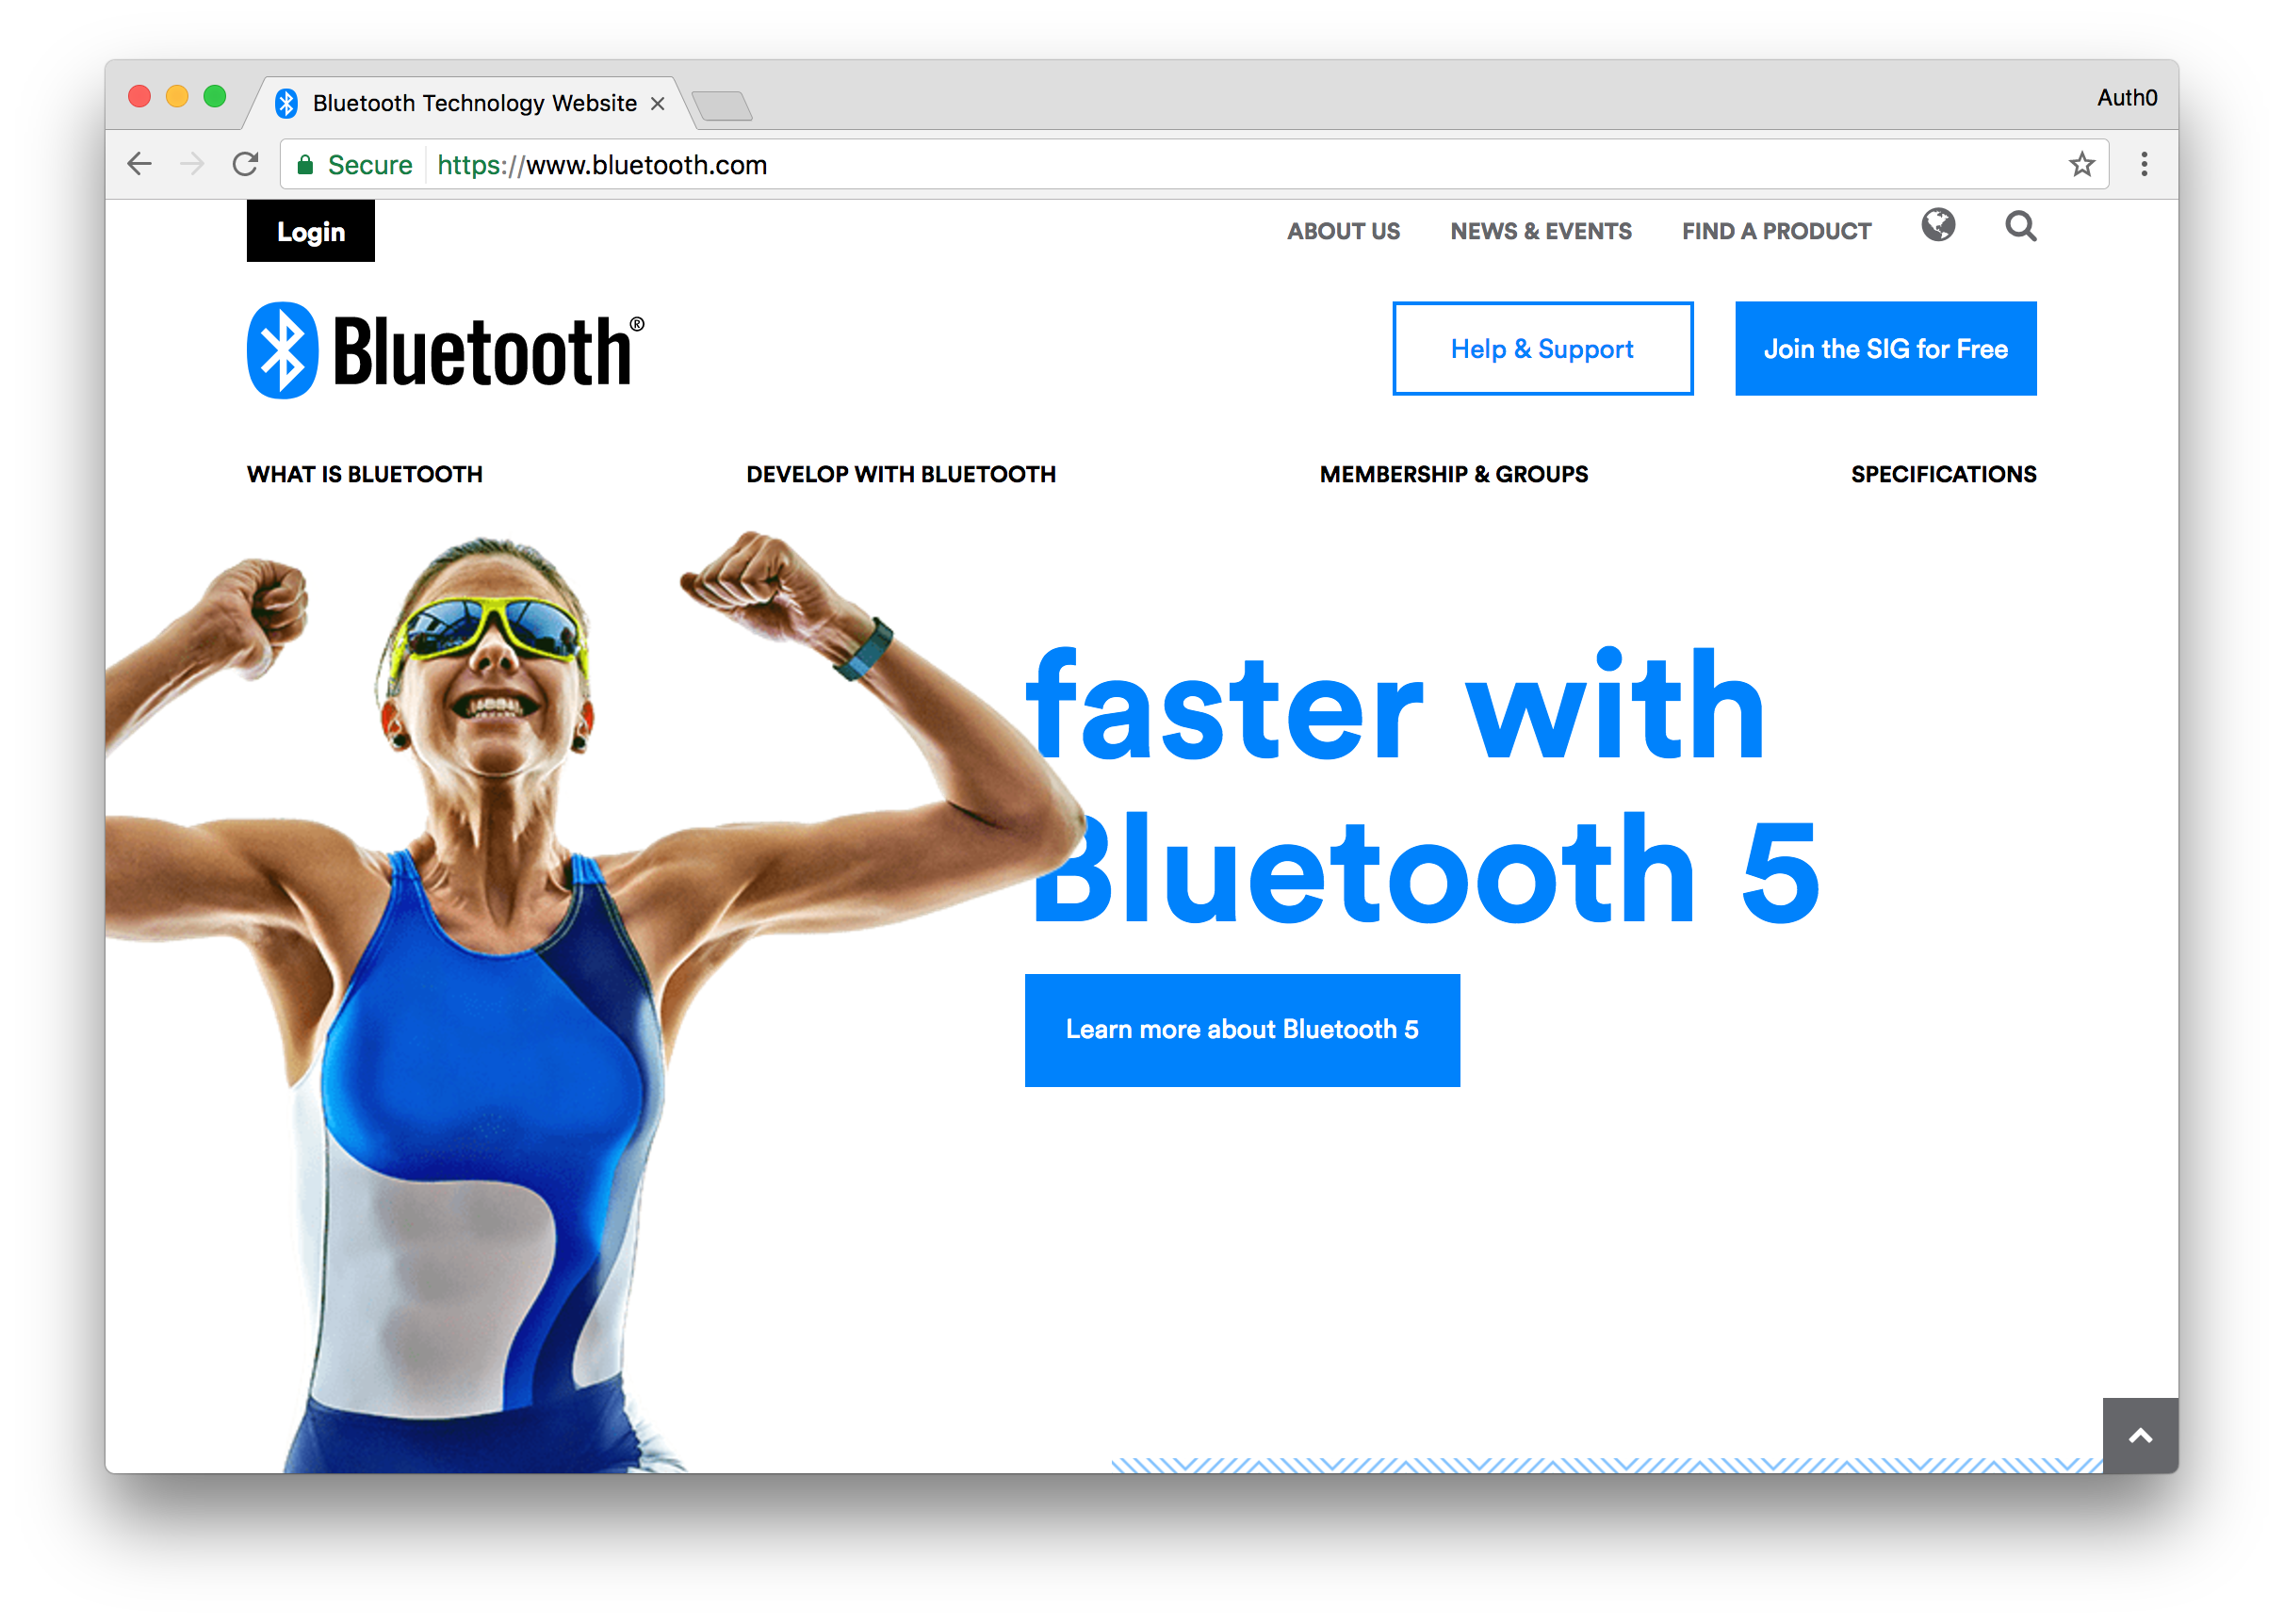 Bluetooth Website